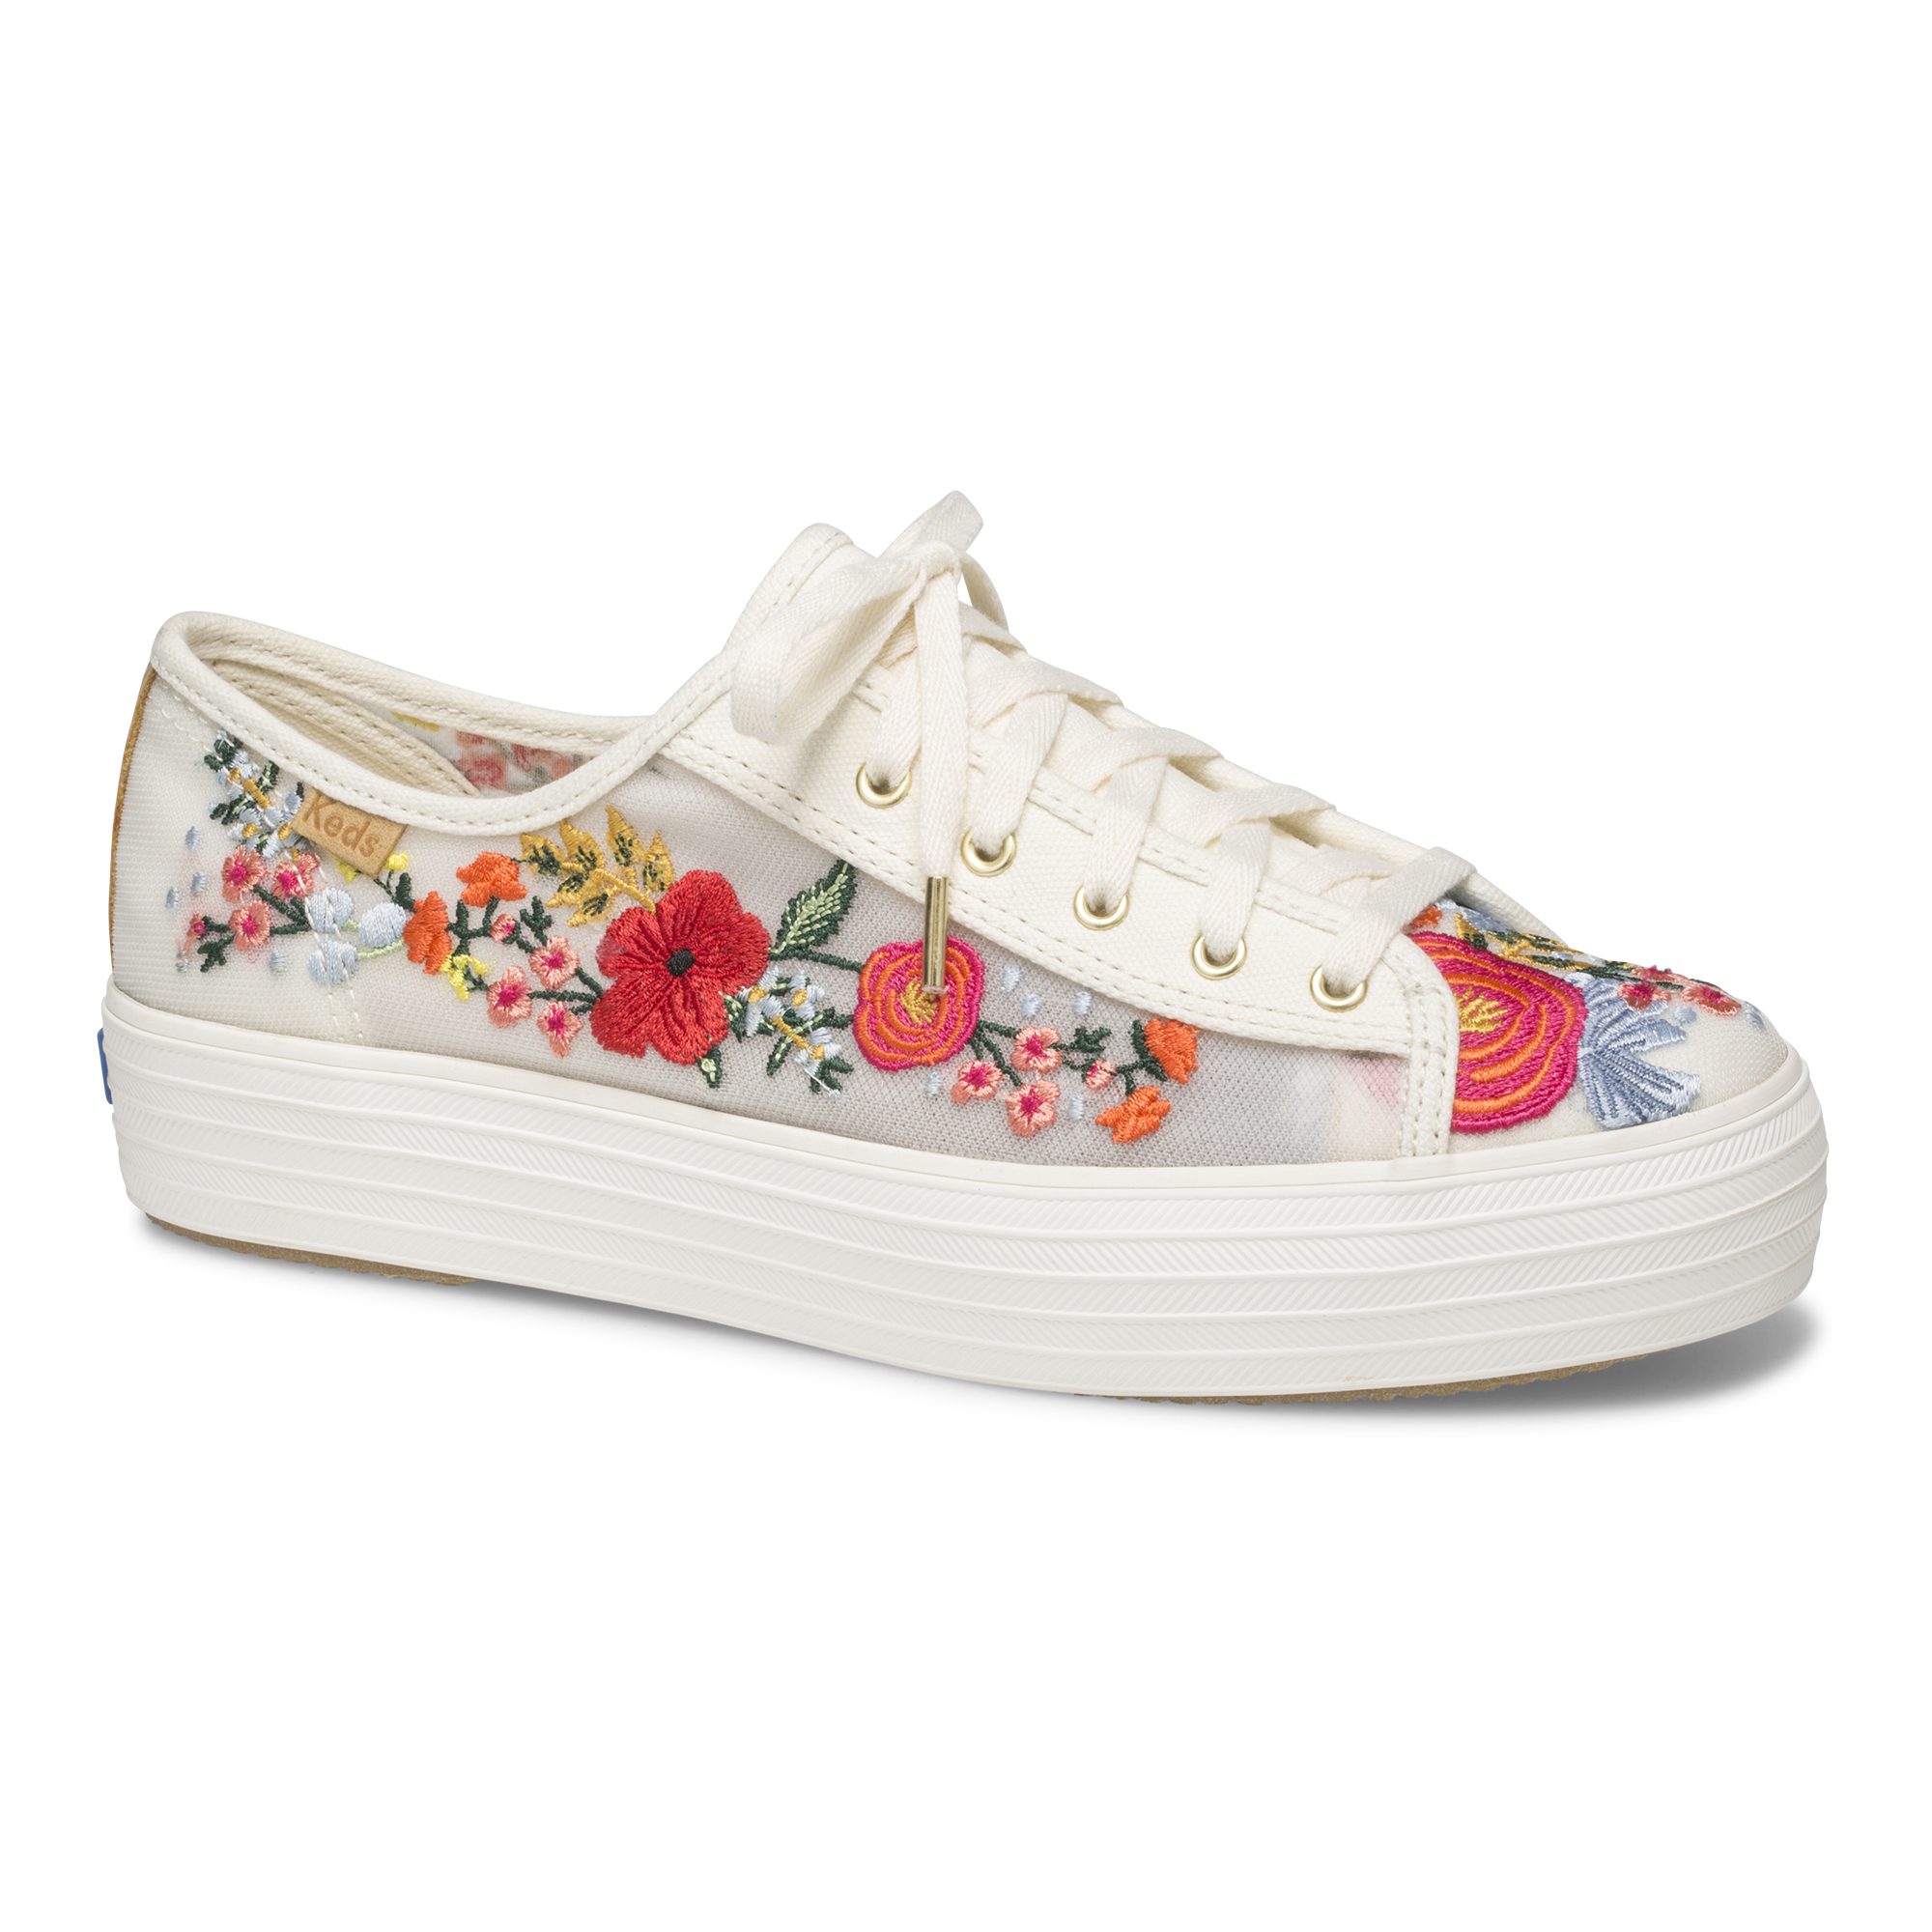 embroidered floral shoe